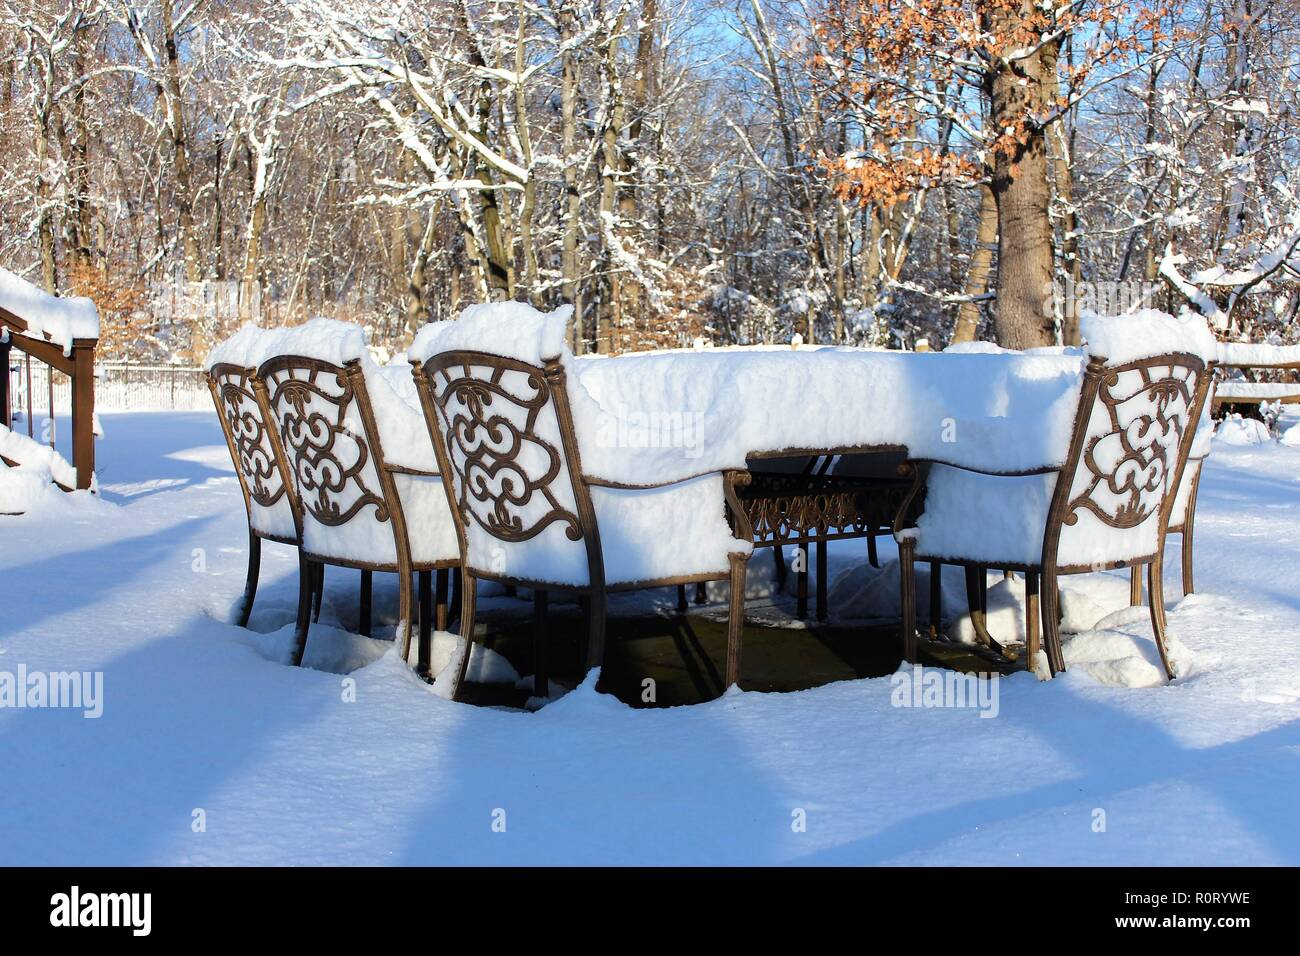 Outdoor table and chairs covered by snow - Stock Image